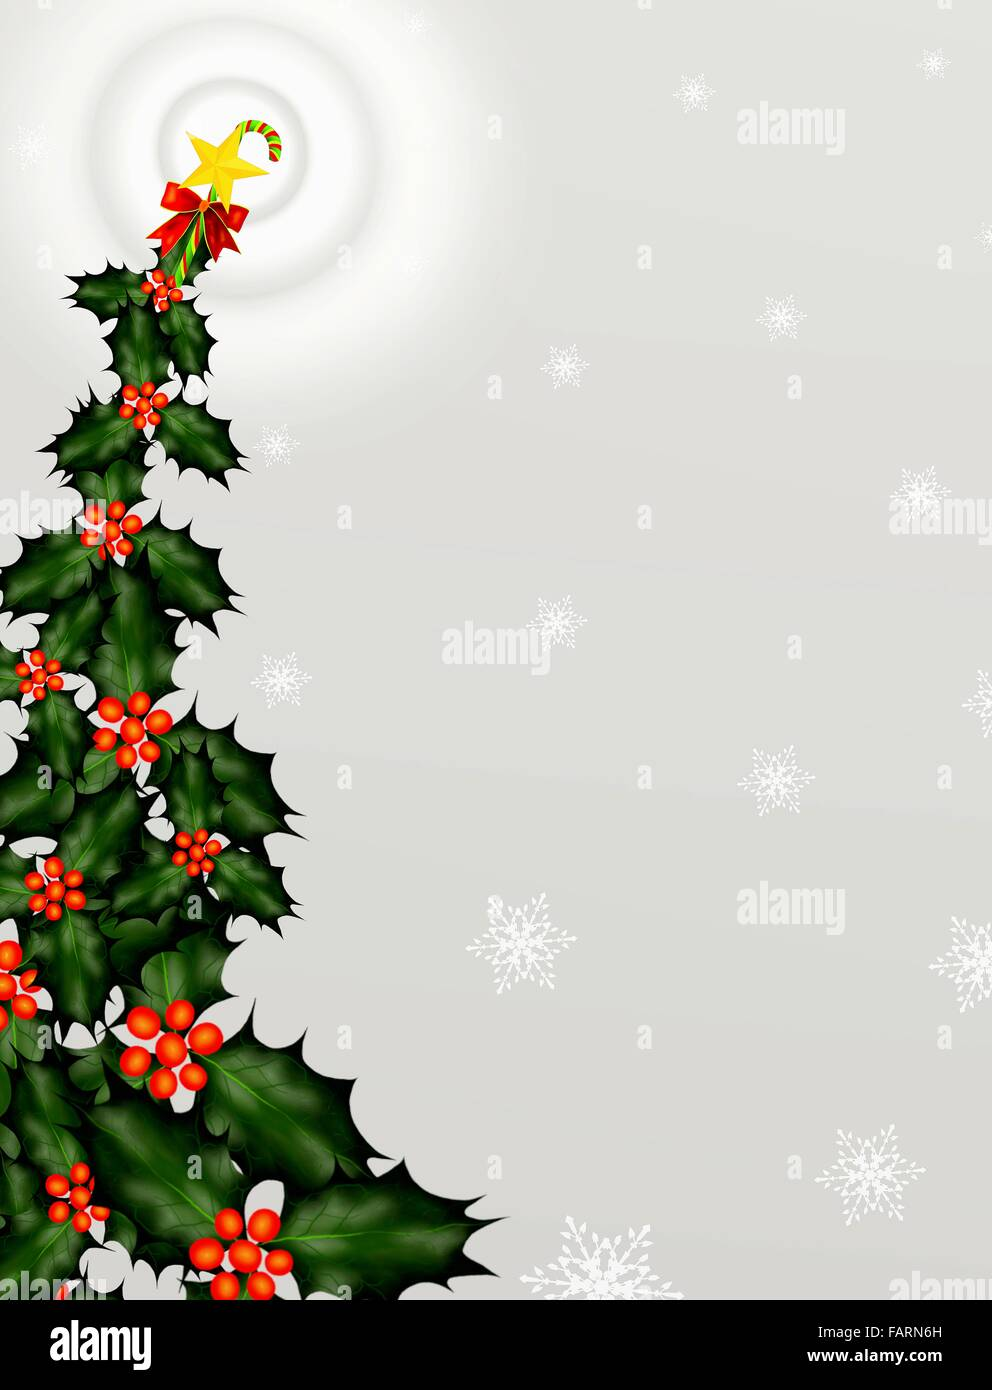 The Holly Leaves And Berry On The Shape Of Christmas Tree